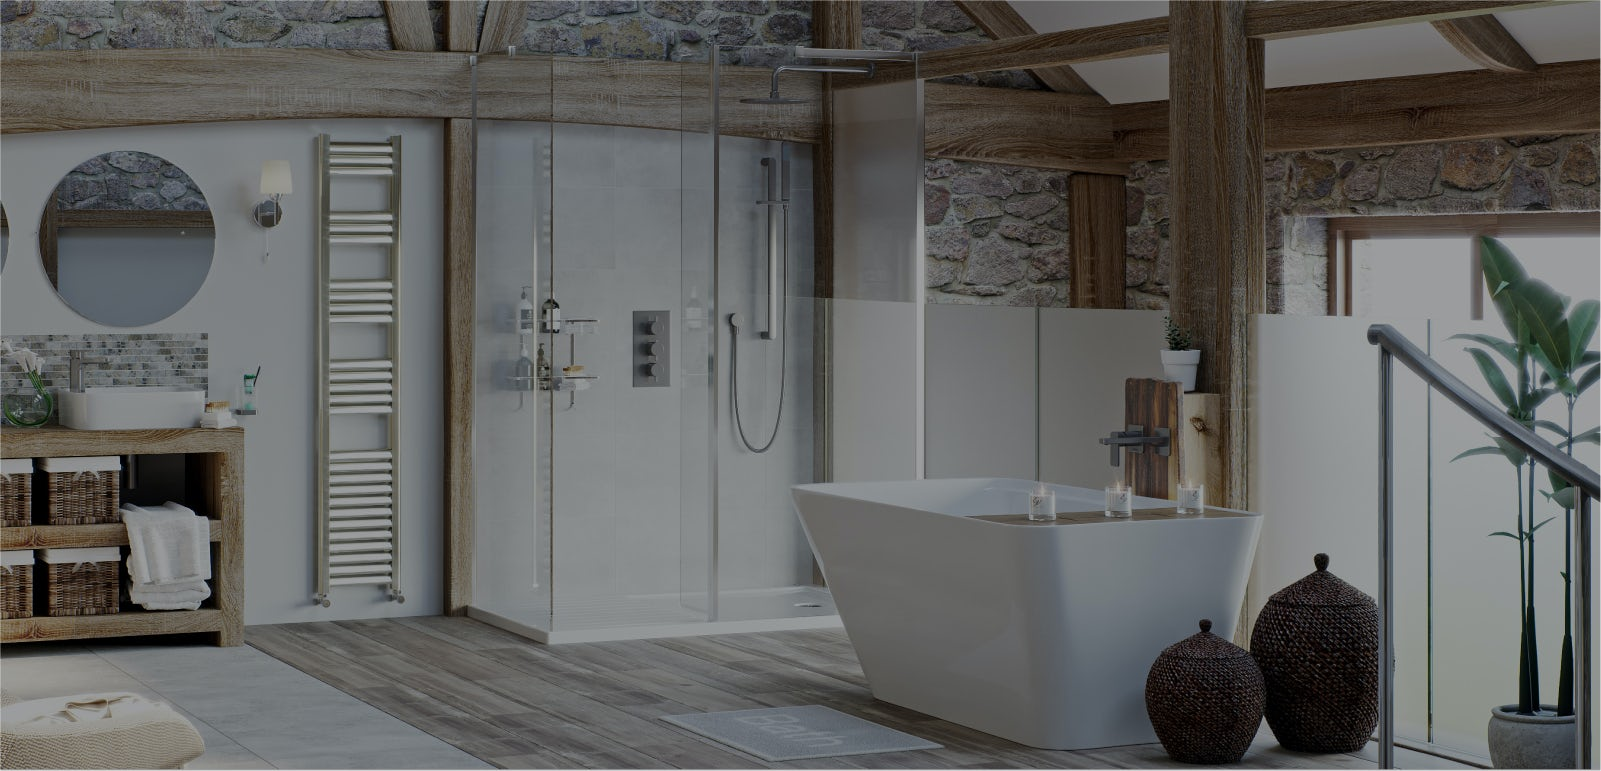 Bathroom ideas: Refined Rustic part 1